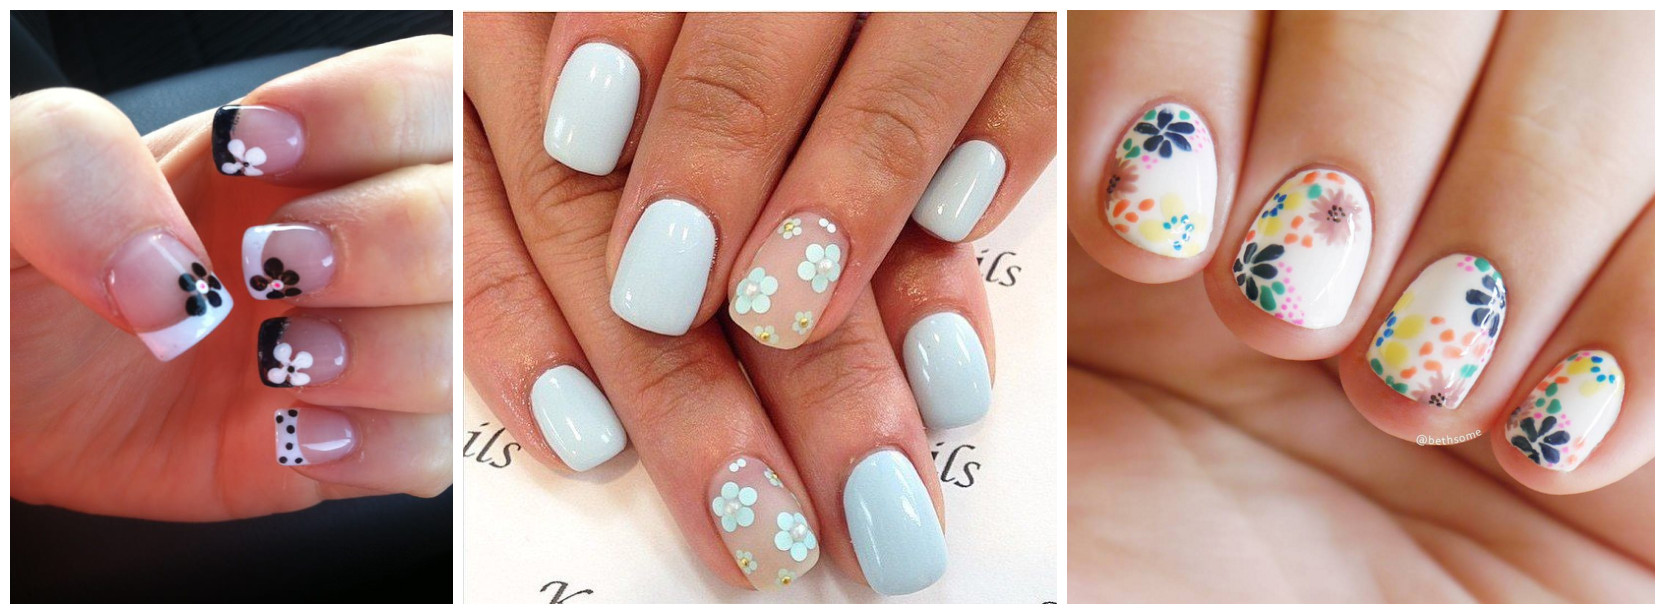 Get A Unique Touch With Flowery Nail Fashion Beauty Life